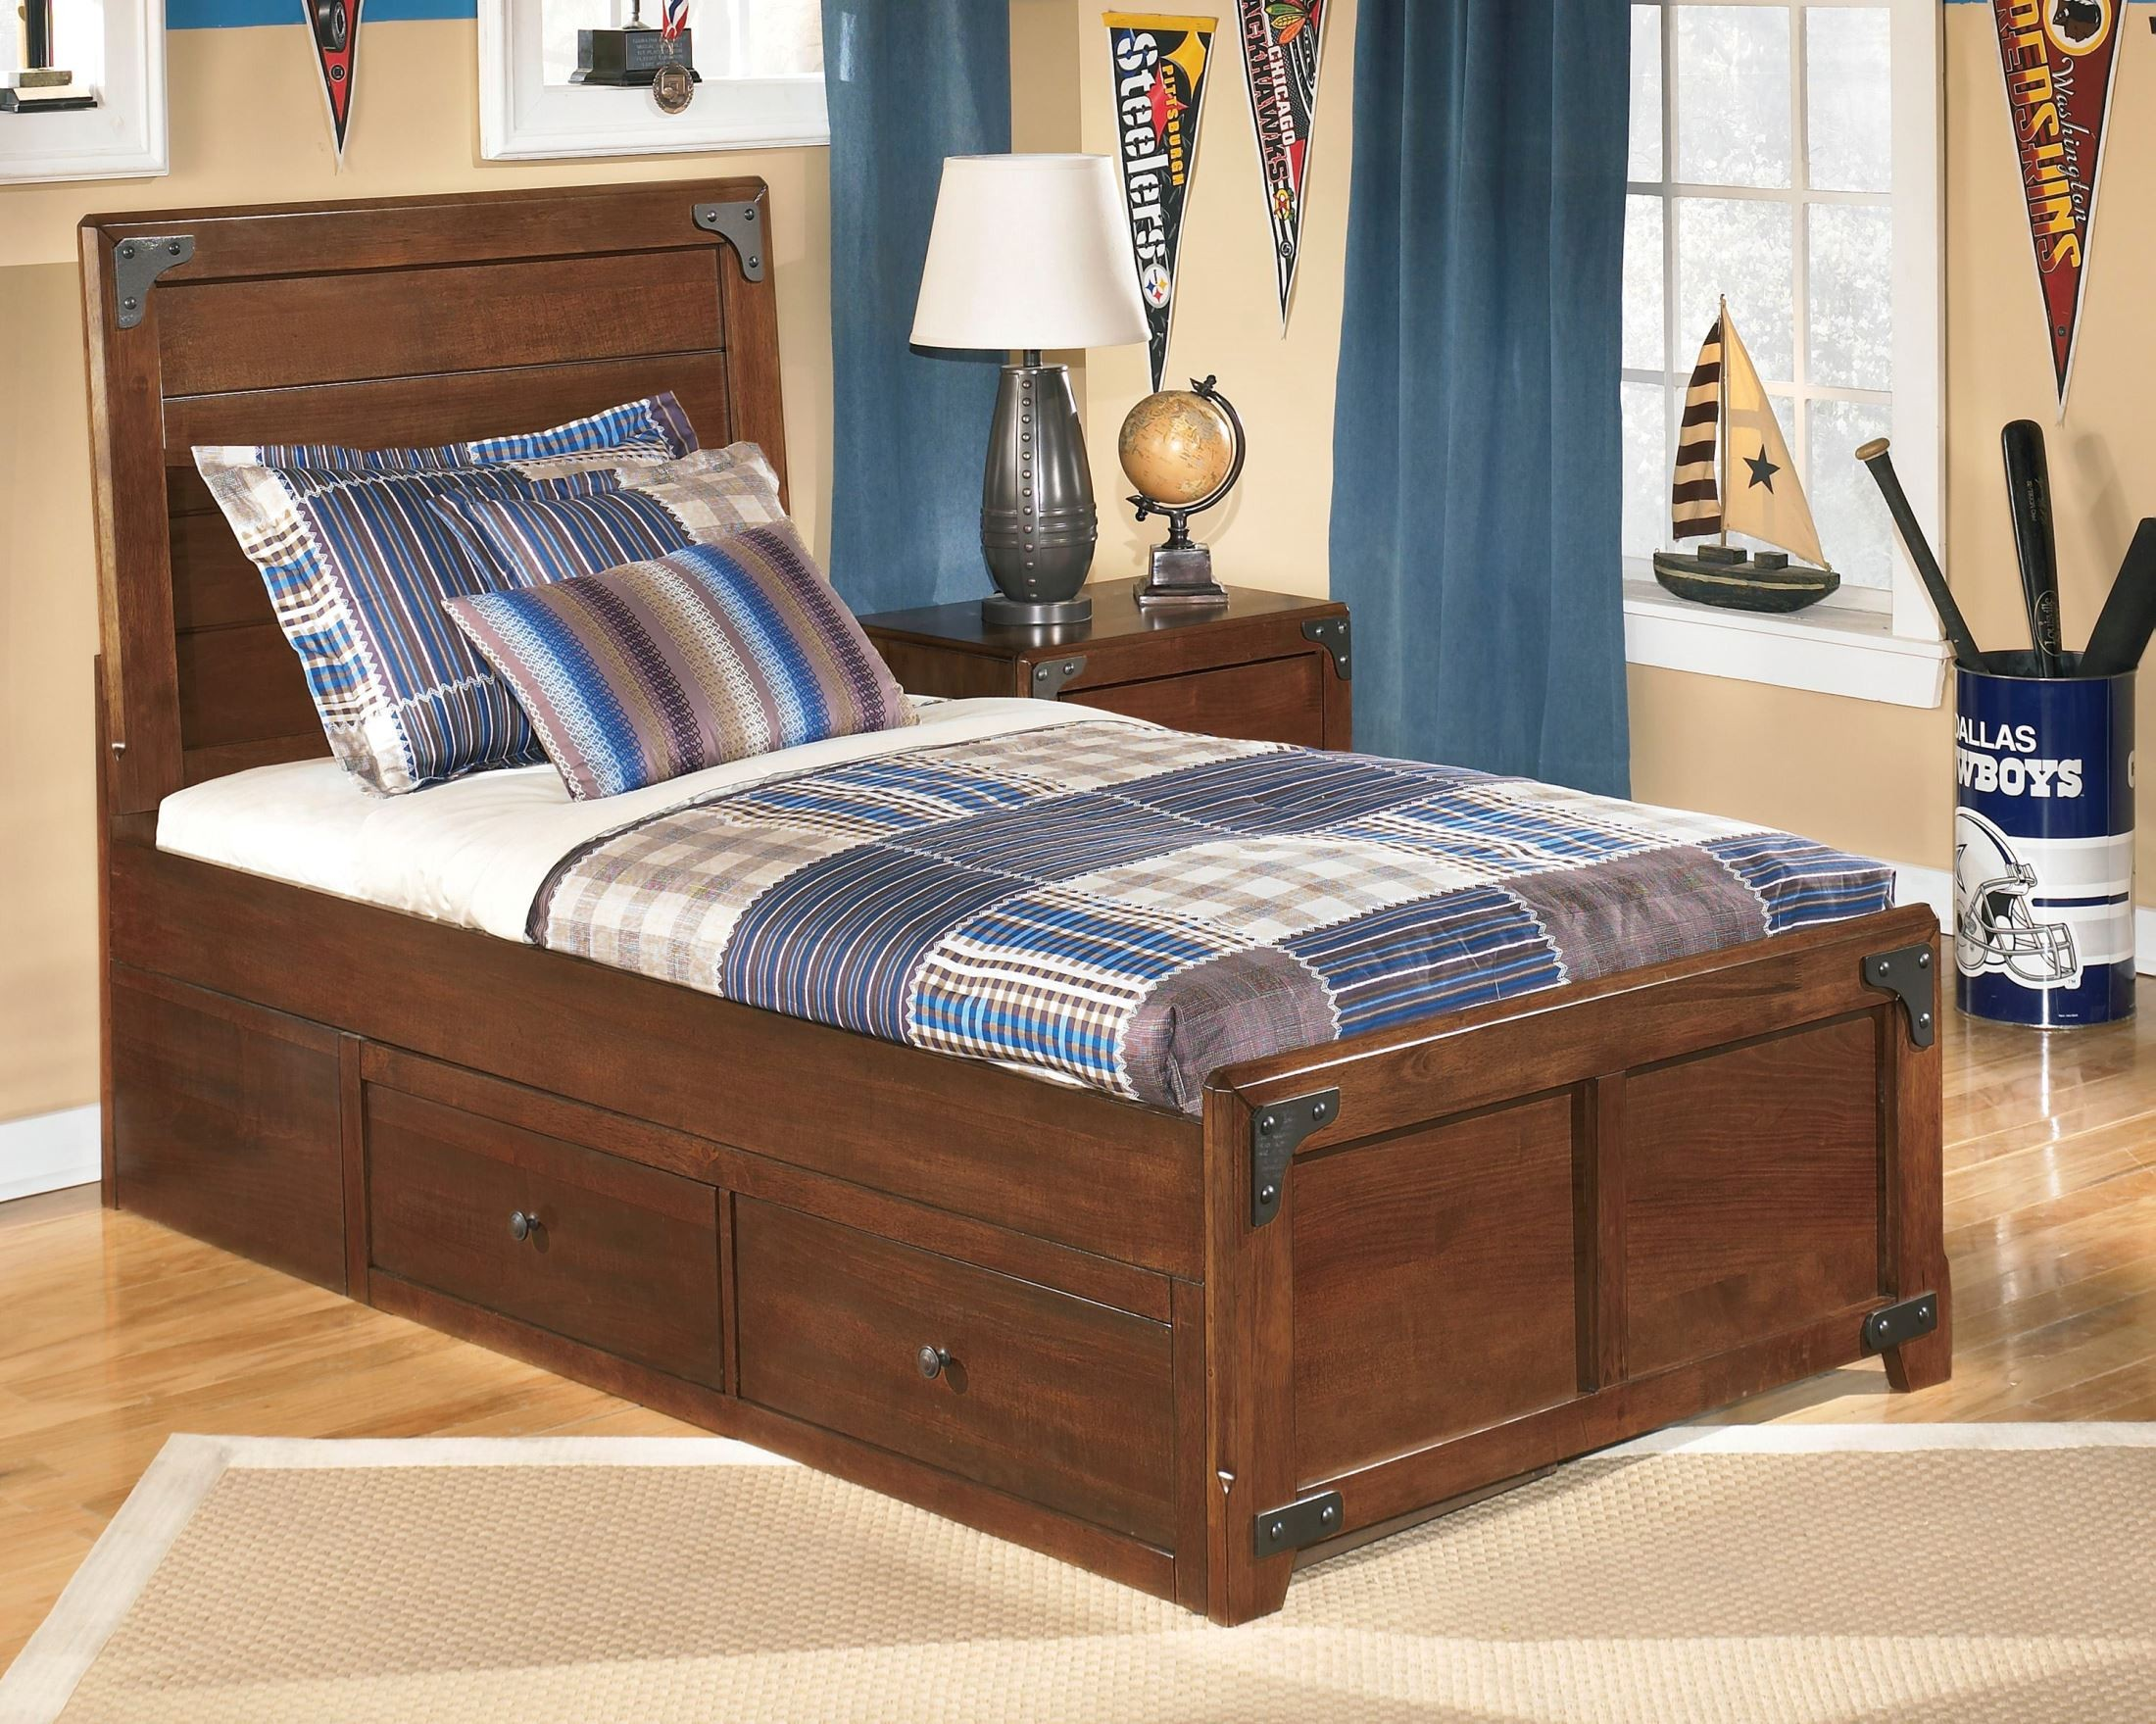 Delburne Youth Panel Storage Bedroom Set From Ashley B362 63 50 70 Colema